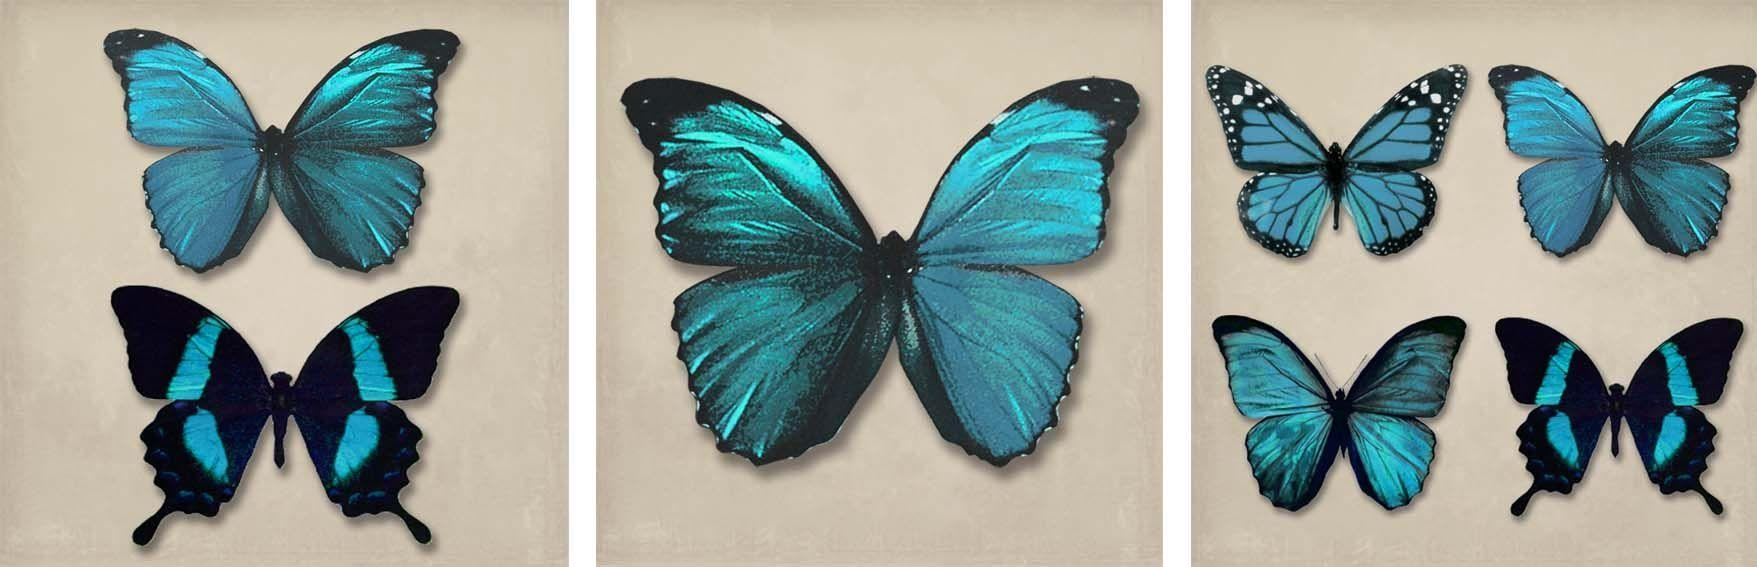 Teal Butterflies Set Of 3 Canvasesarthouse : Wallpaper Direct Regarding Butterfly Canvas Wall Art (Image 19 of 20)